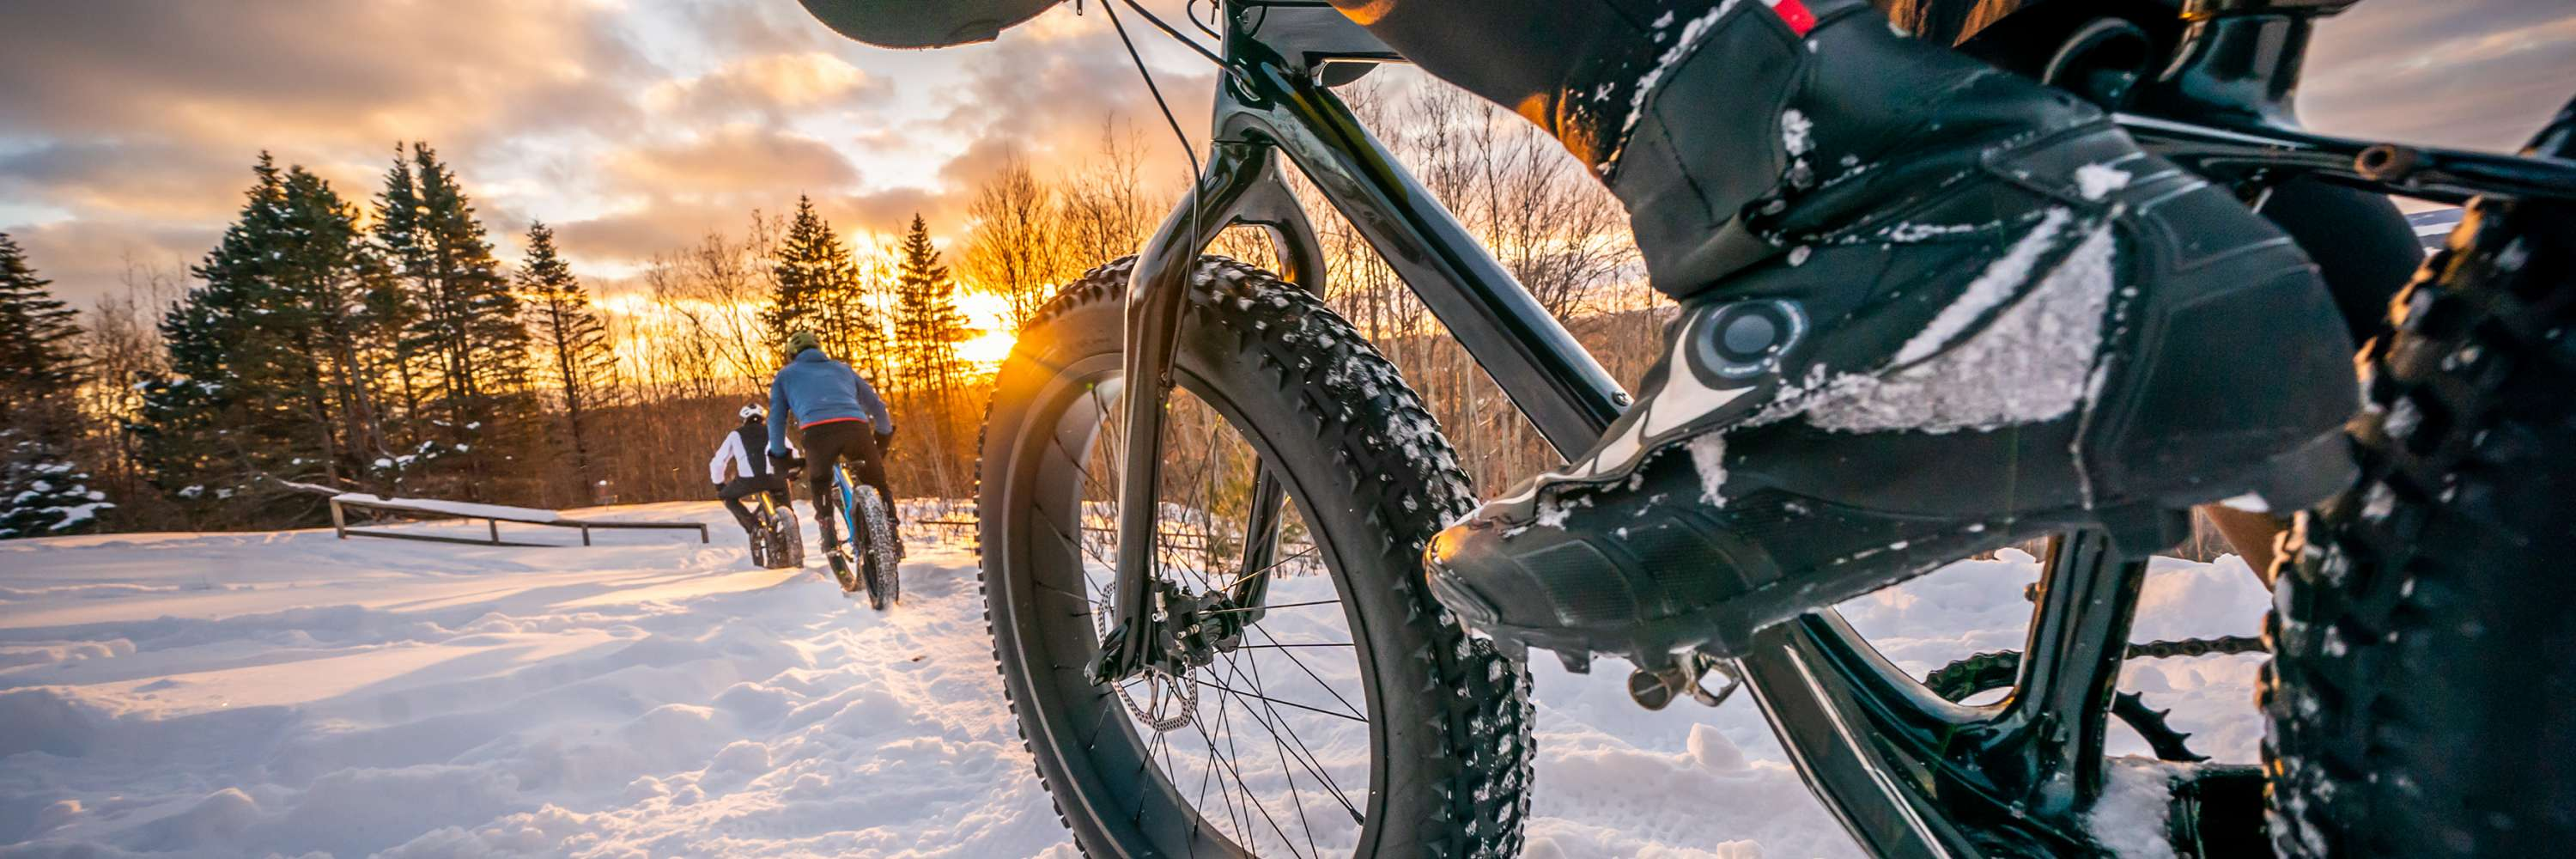 Pure Michigan: Fat Tire Biking